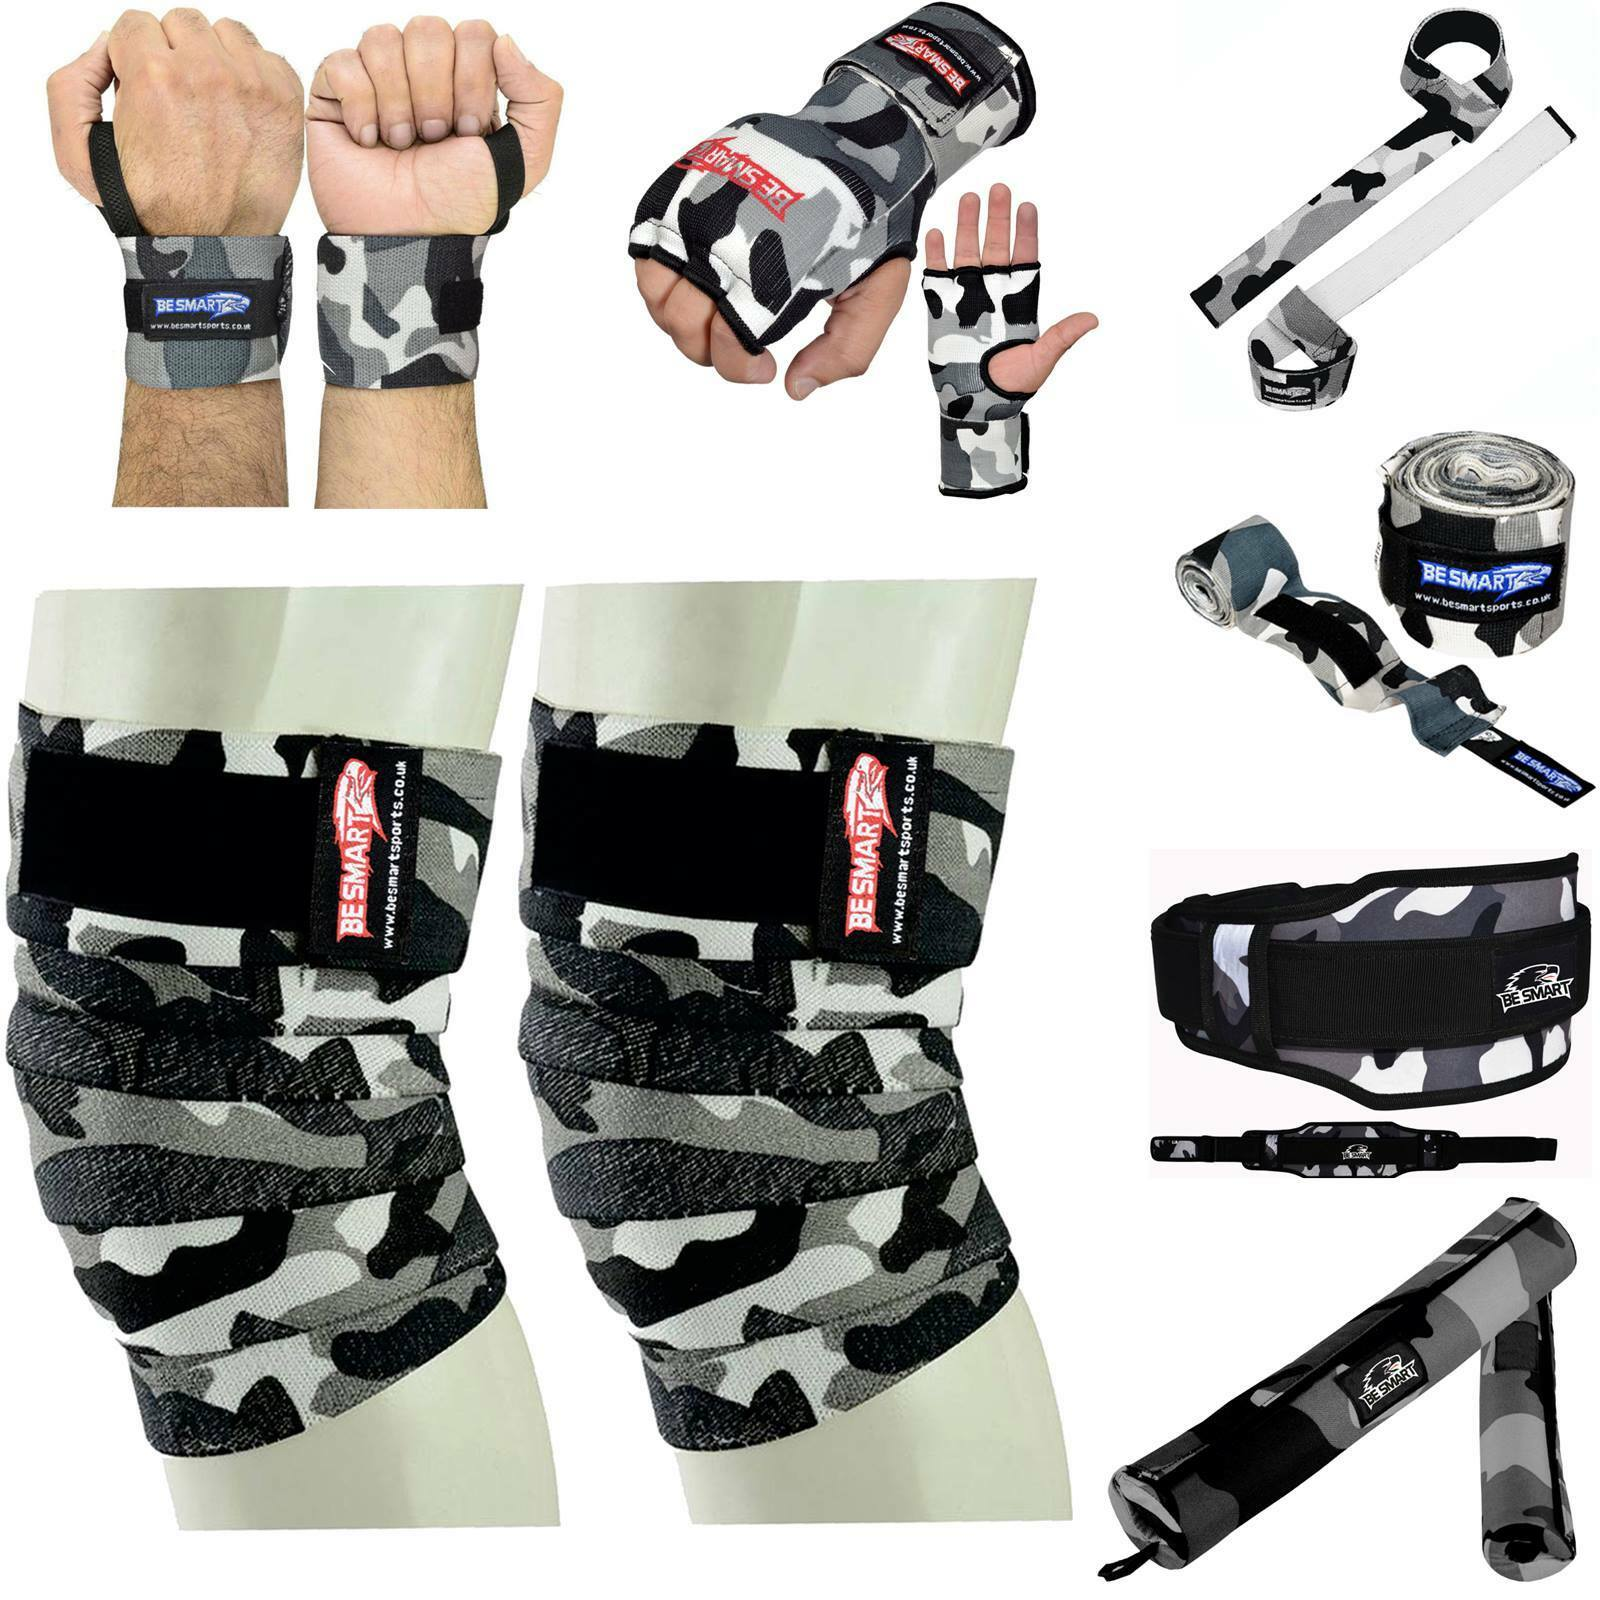 Be Smart Knee Wraps wraps Weight Lifting Straps Belt Barbell Wrist wraps Wraps Powerlifting d498b5